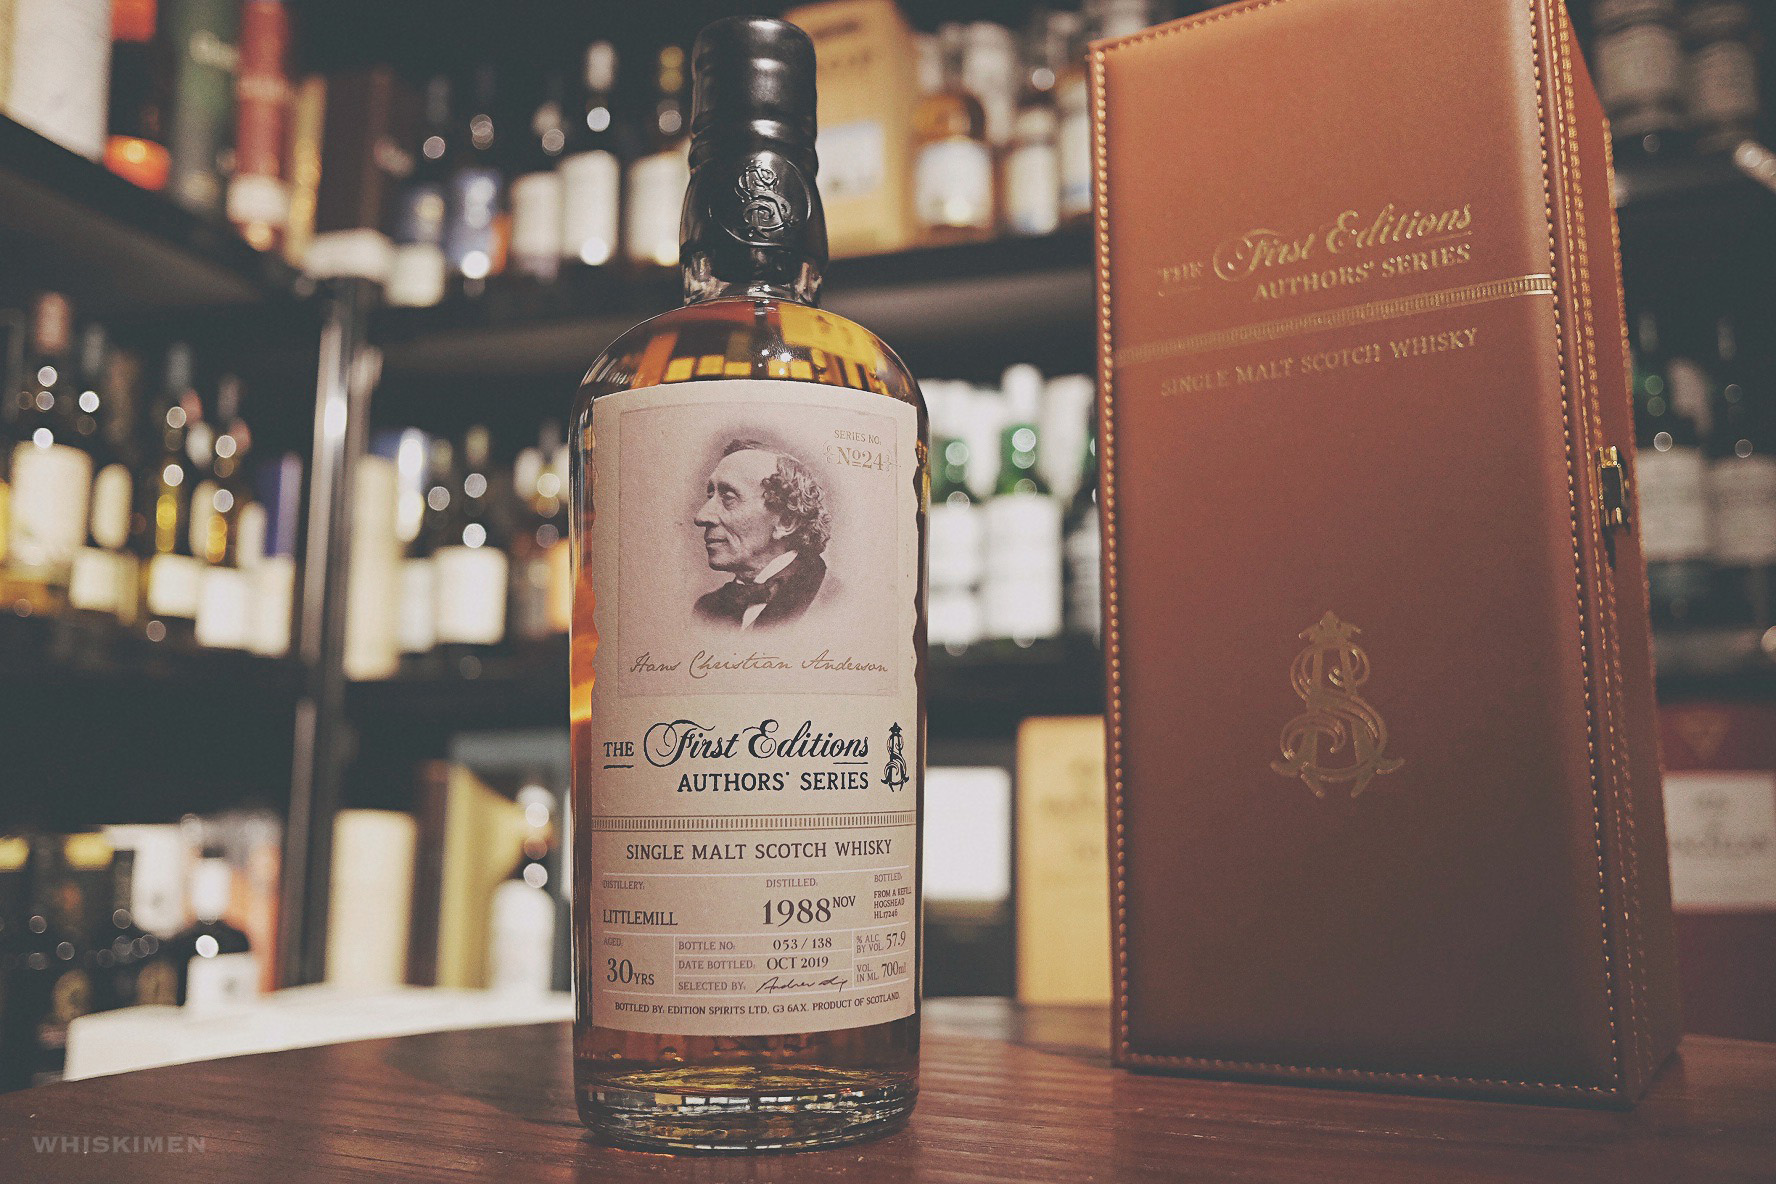 Edition Spirits The First Editions Authors' Series Littlemill 1988 30 Year Old Single Malt Whisky lowland closed distillery discontinued 作家, First Editions HL17246 Danish Hans Christian Andersen 安徒生